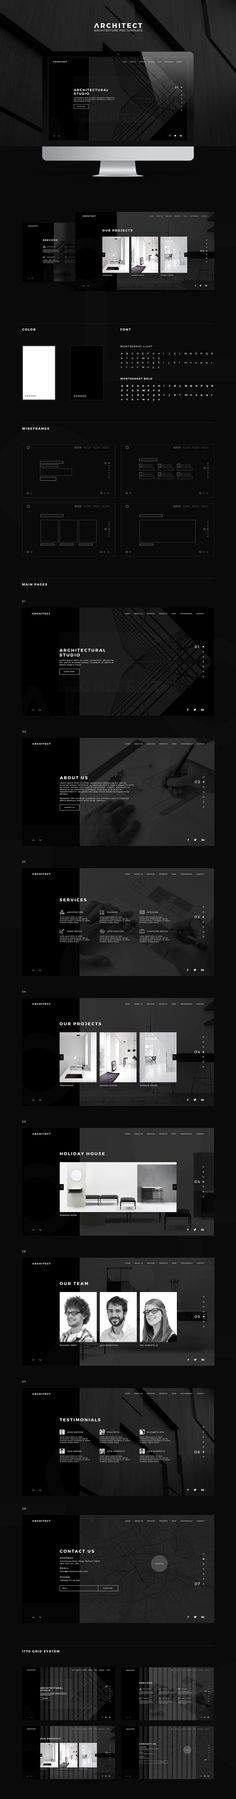 Architect - Architecture PSD Template on Behance